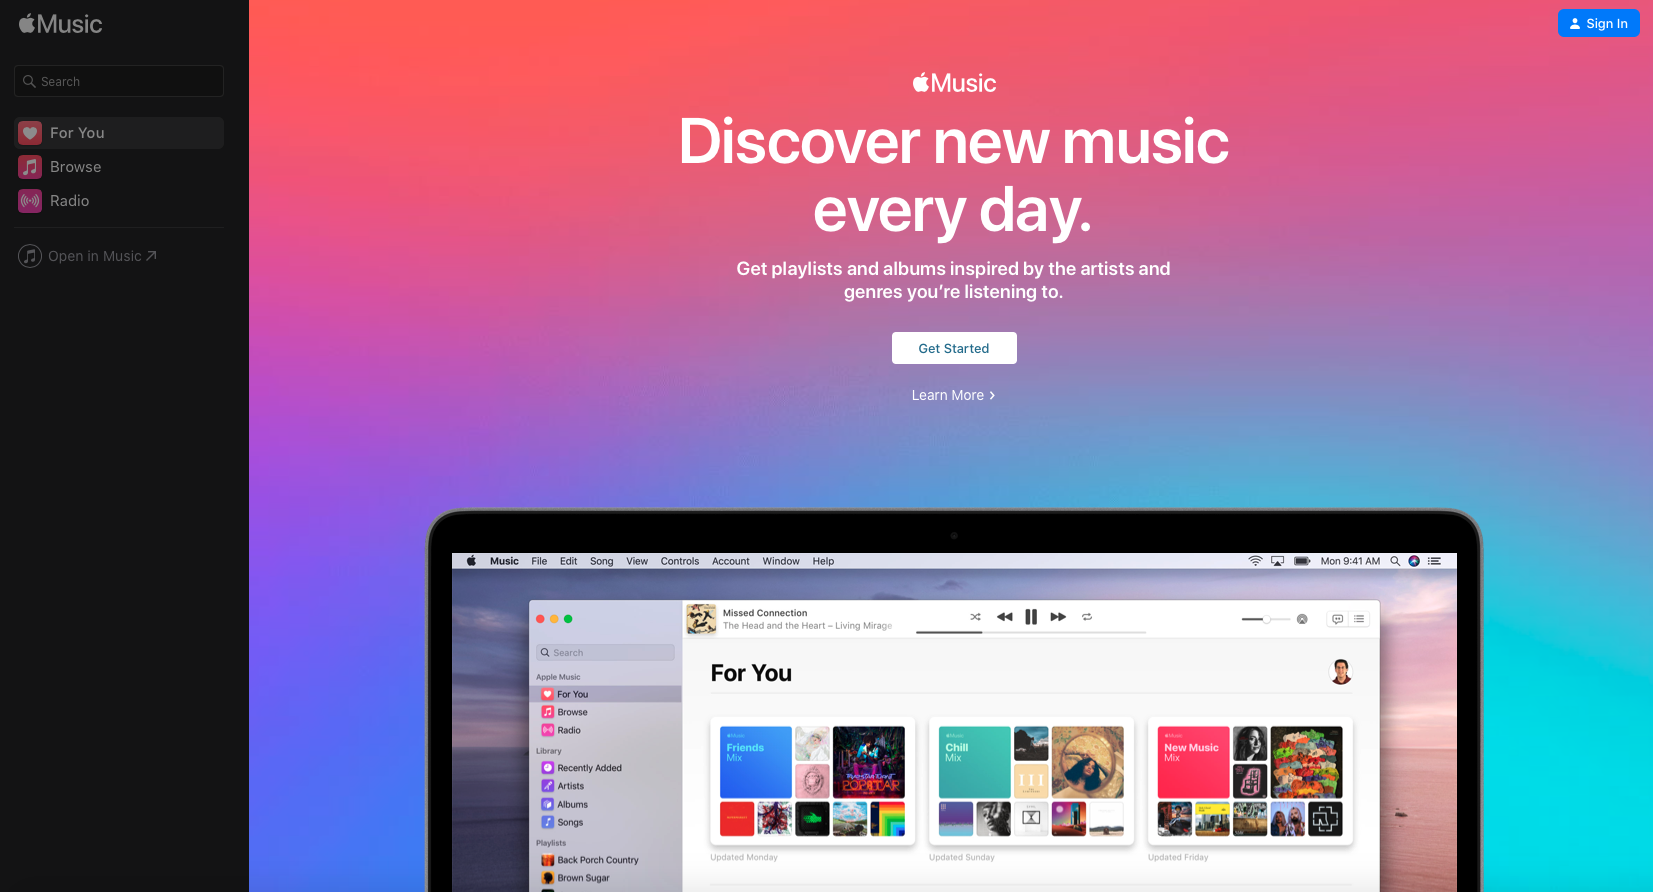 Apple Music Discover New Music Screen Shot